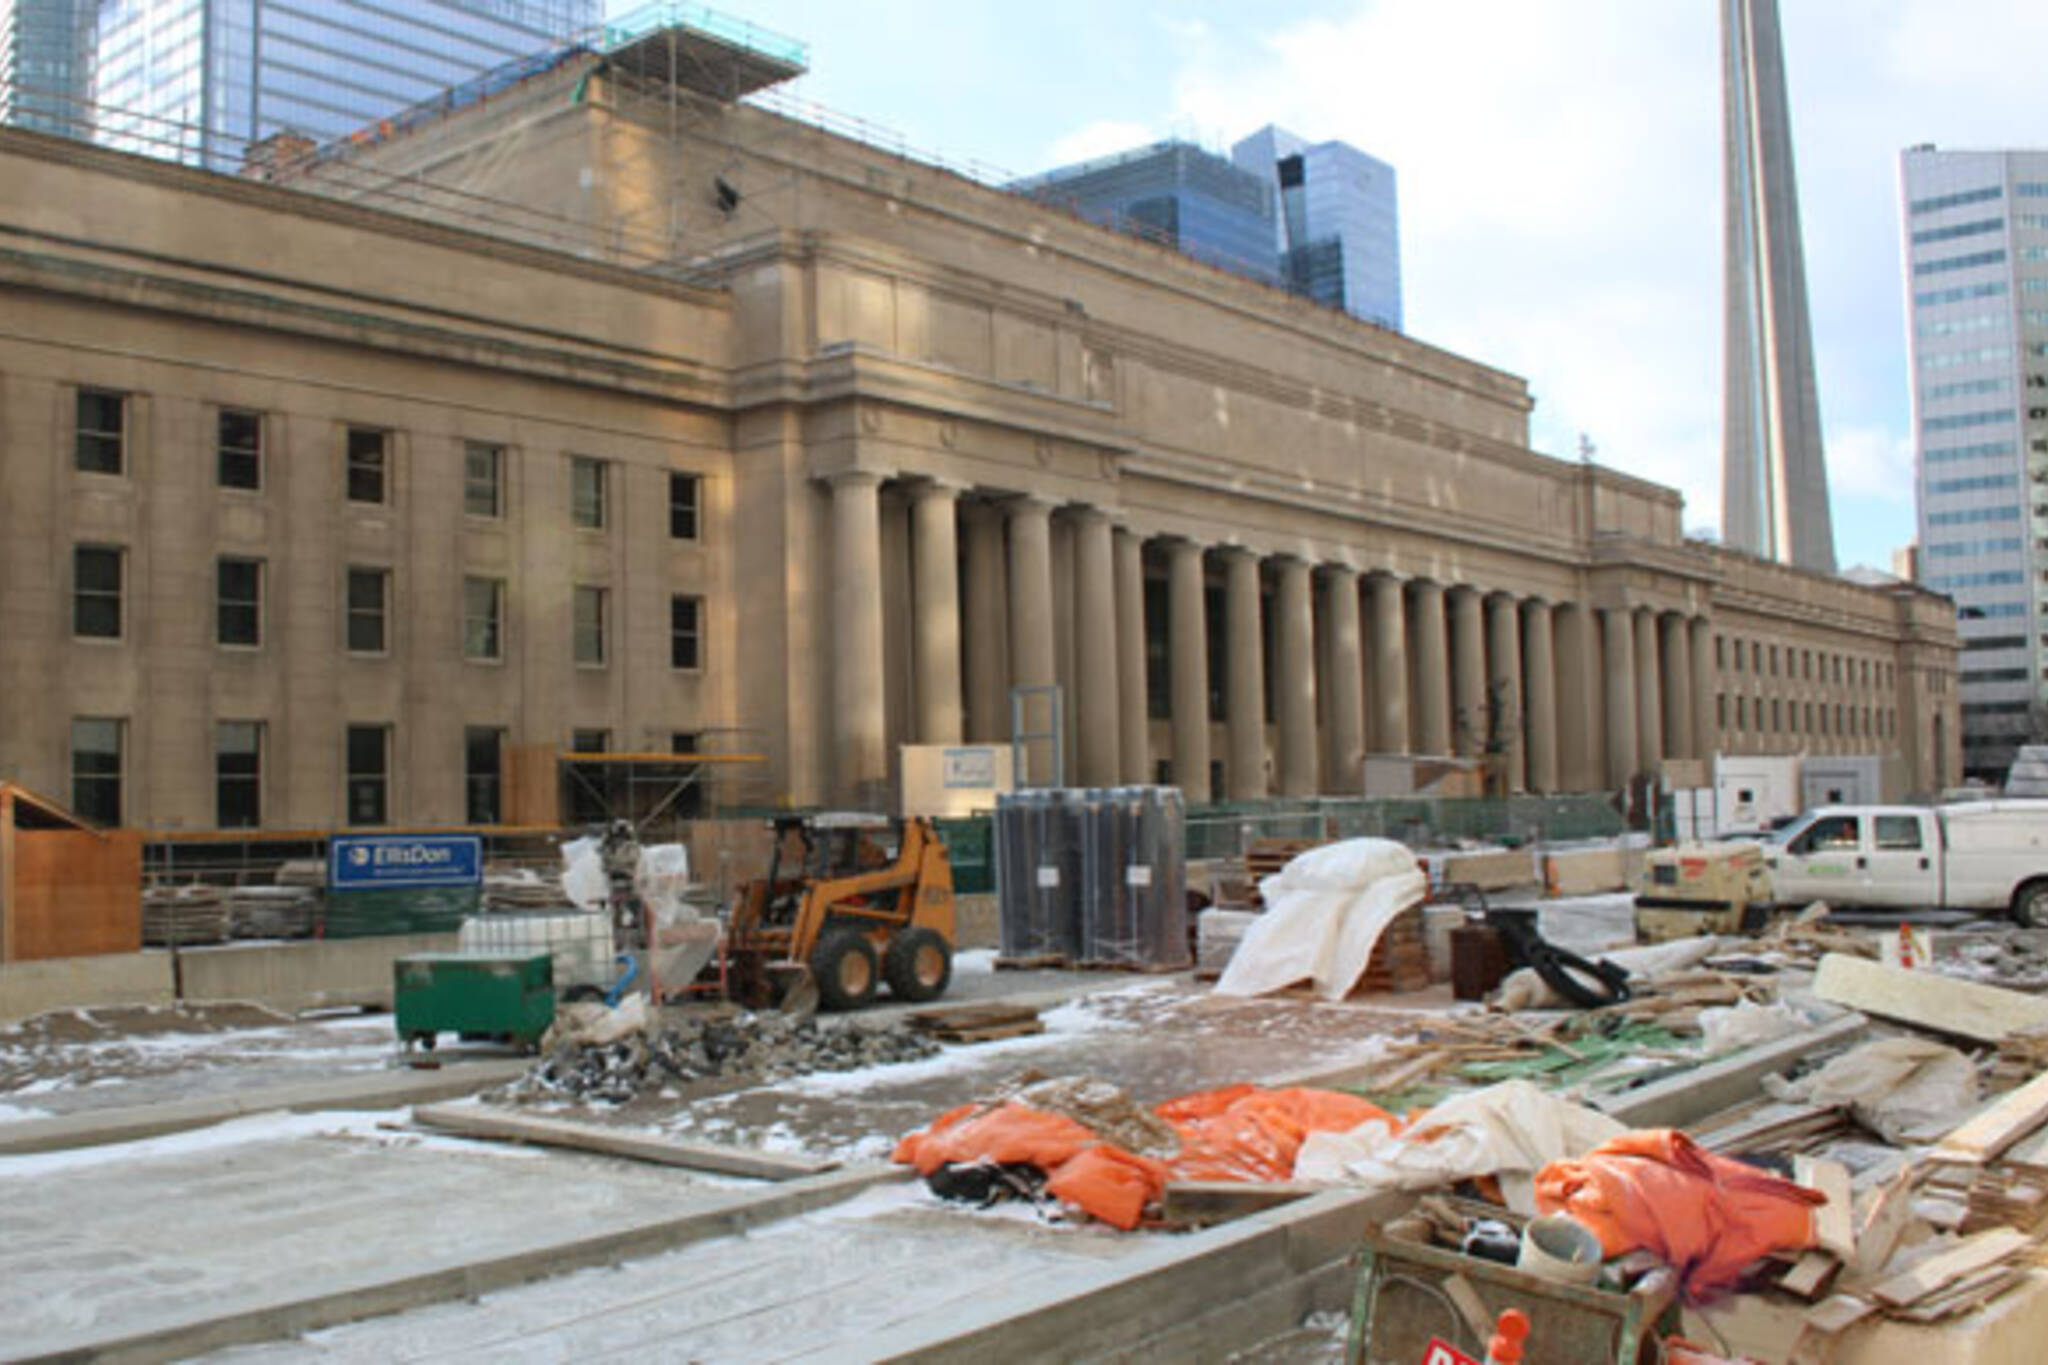 how to get from union station to royal ontario museum